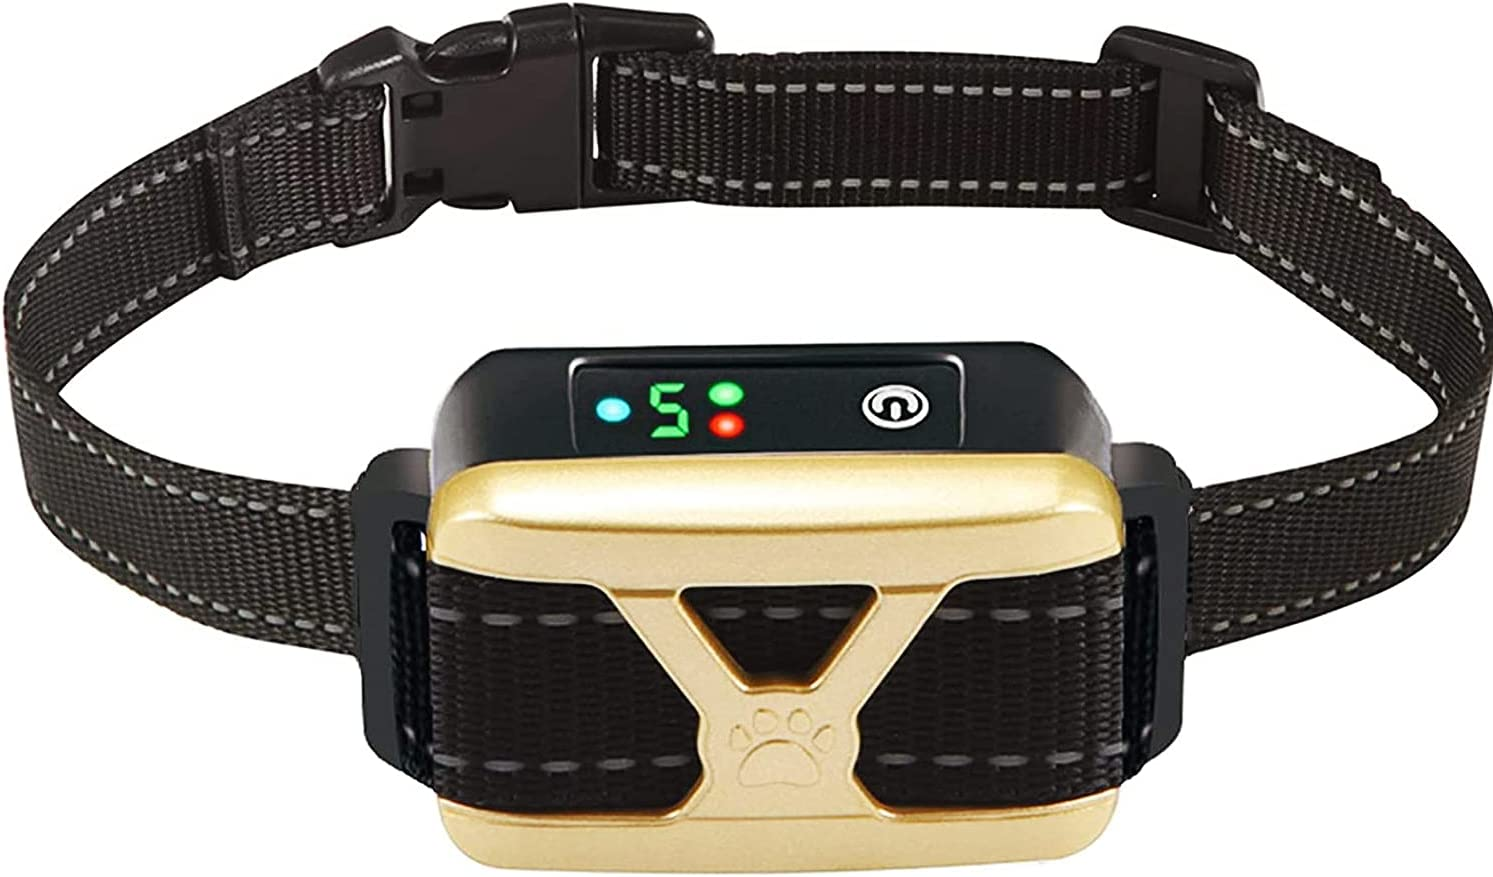 Esosy Bark Collar Rechargeable Dog Control Daily bargain sale Col Barking Max 74% OFF Training